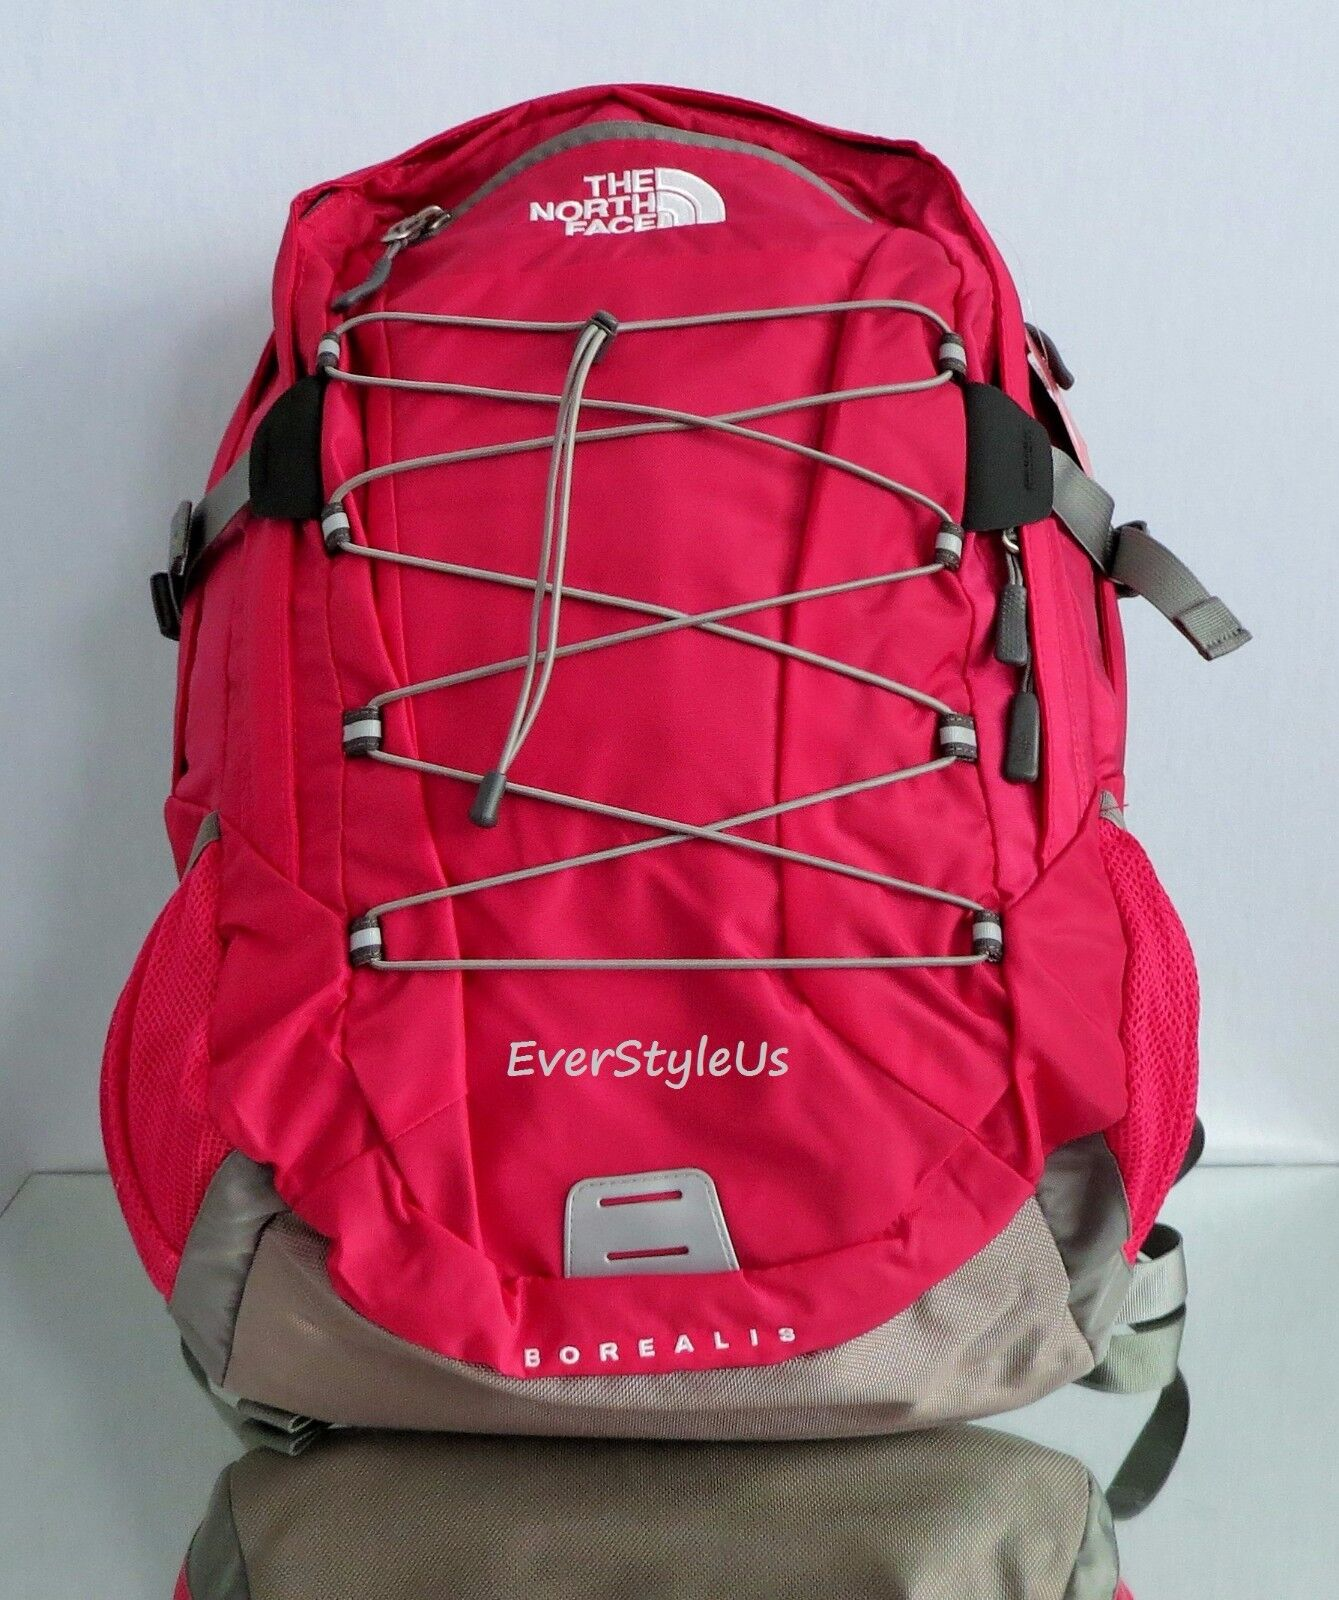 THE NORTH FACE Borealis Women's Backpack ROSE RED